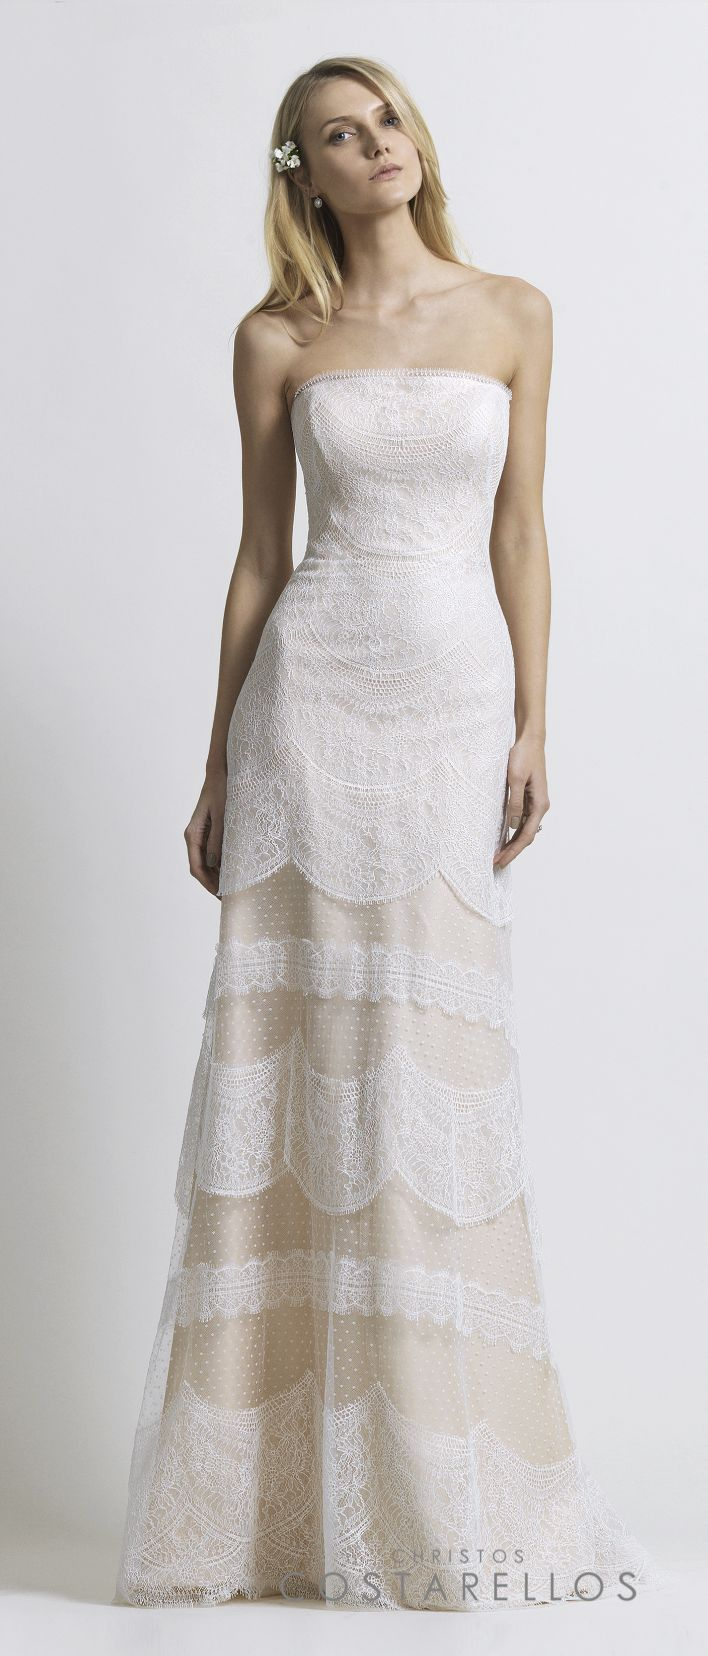 Christos Costarellos Bridal 2014 collection. A wedding dress with chantilly lace on silk organza base. Code: BR14 13. For stockists please visit www.costarellos.com #christoscostarellos #costarellos #costarellosbride #bridaldress #bridalgown #weddingdress #weddinggown #lace #bridetobe #bridalmarket #bridalfashion #wedding